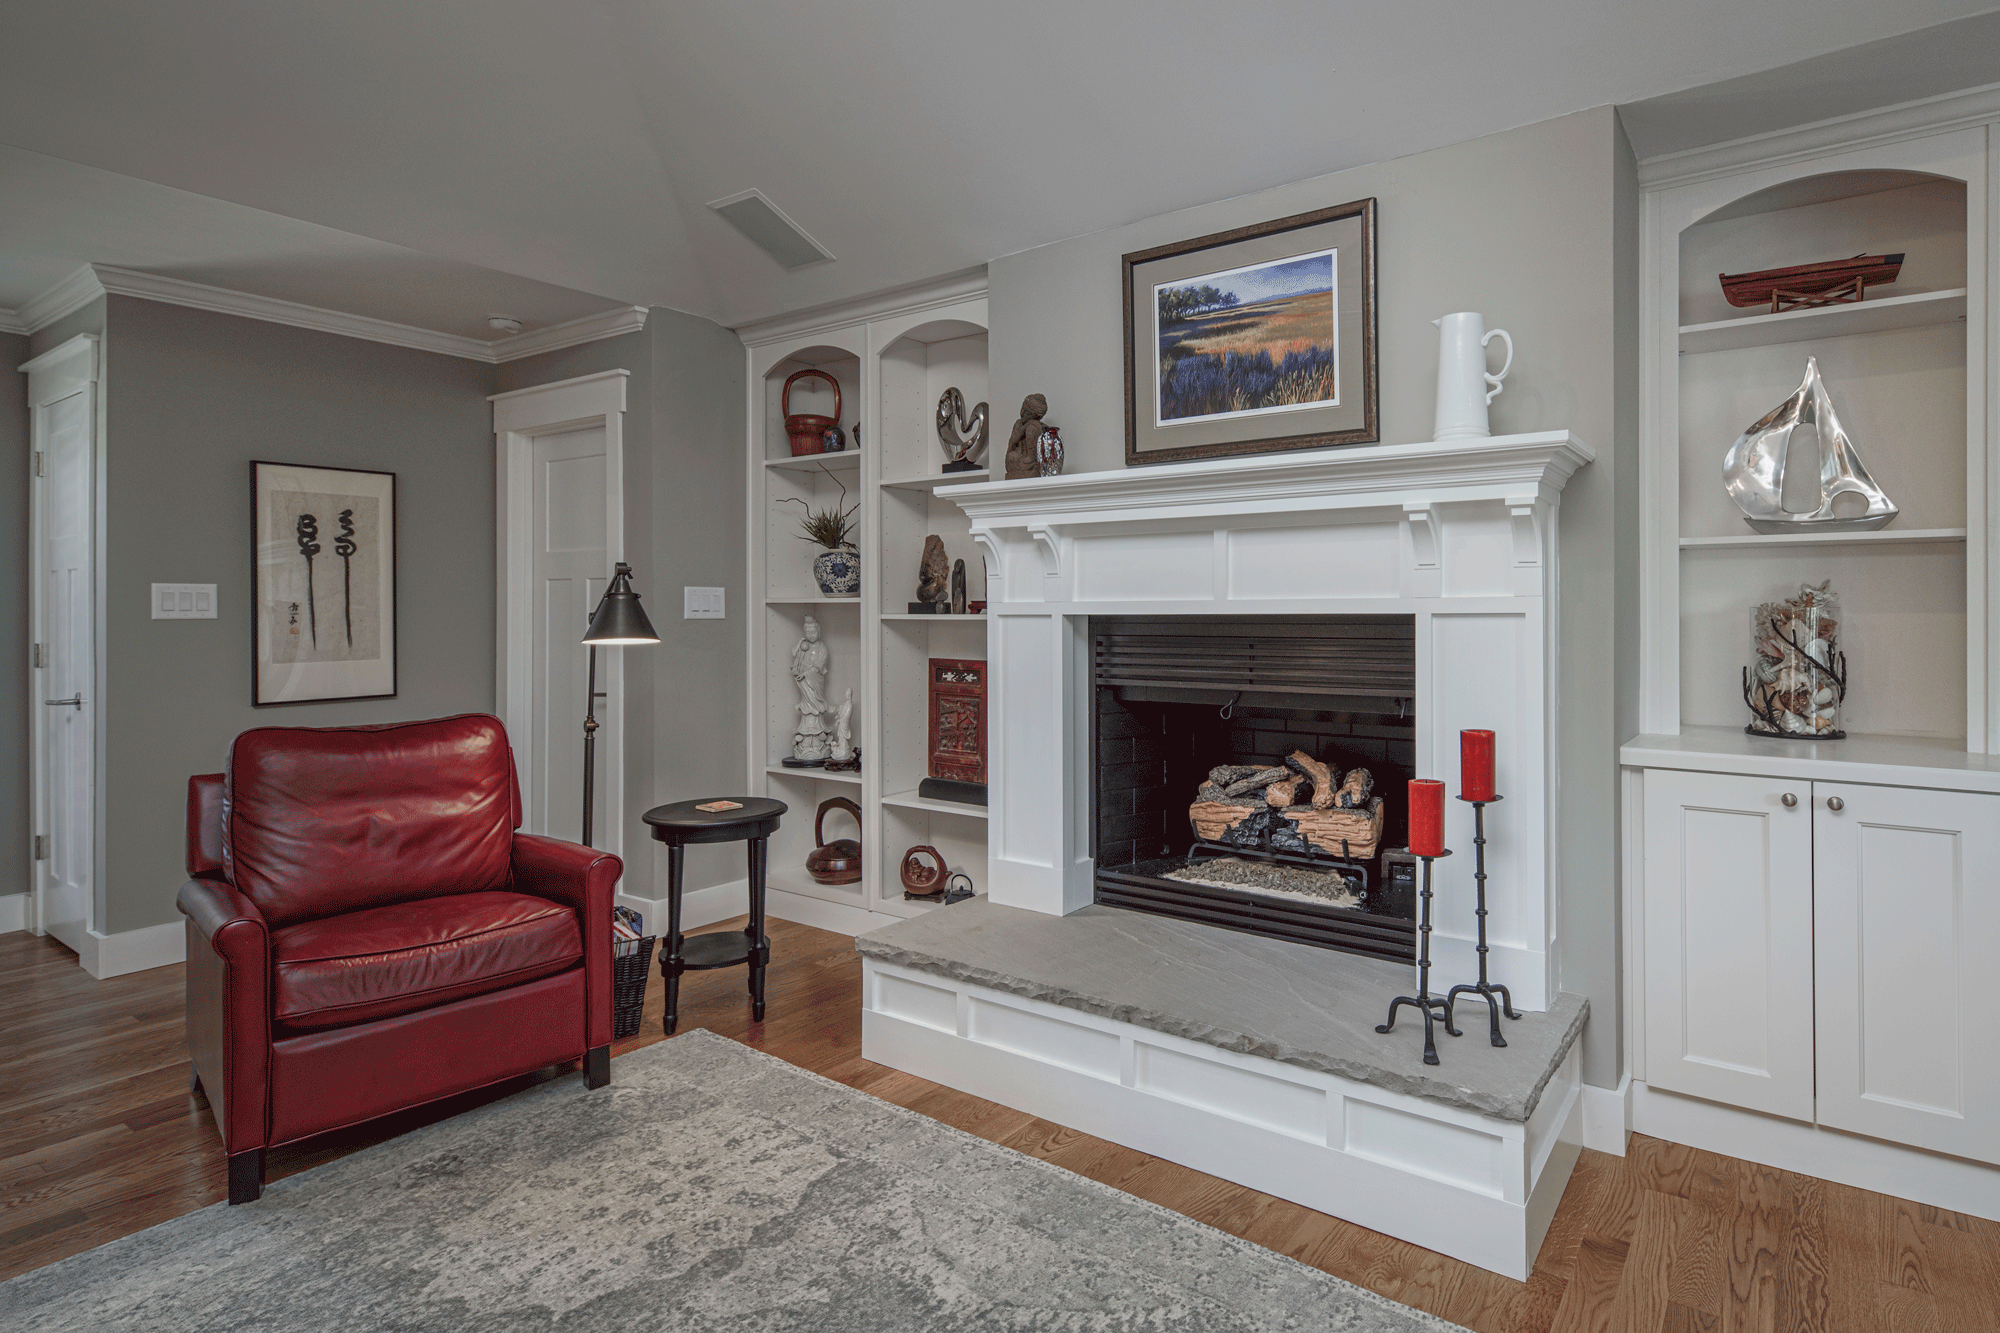 Living room design with built-in shelves, decor, seating, fireplace, creative lighting